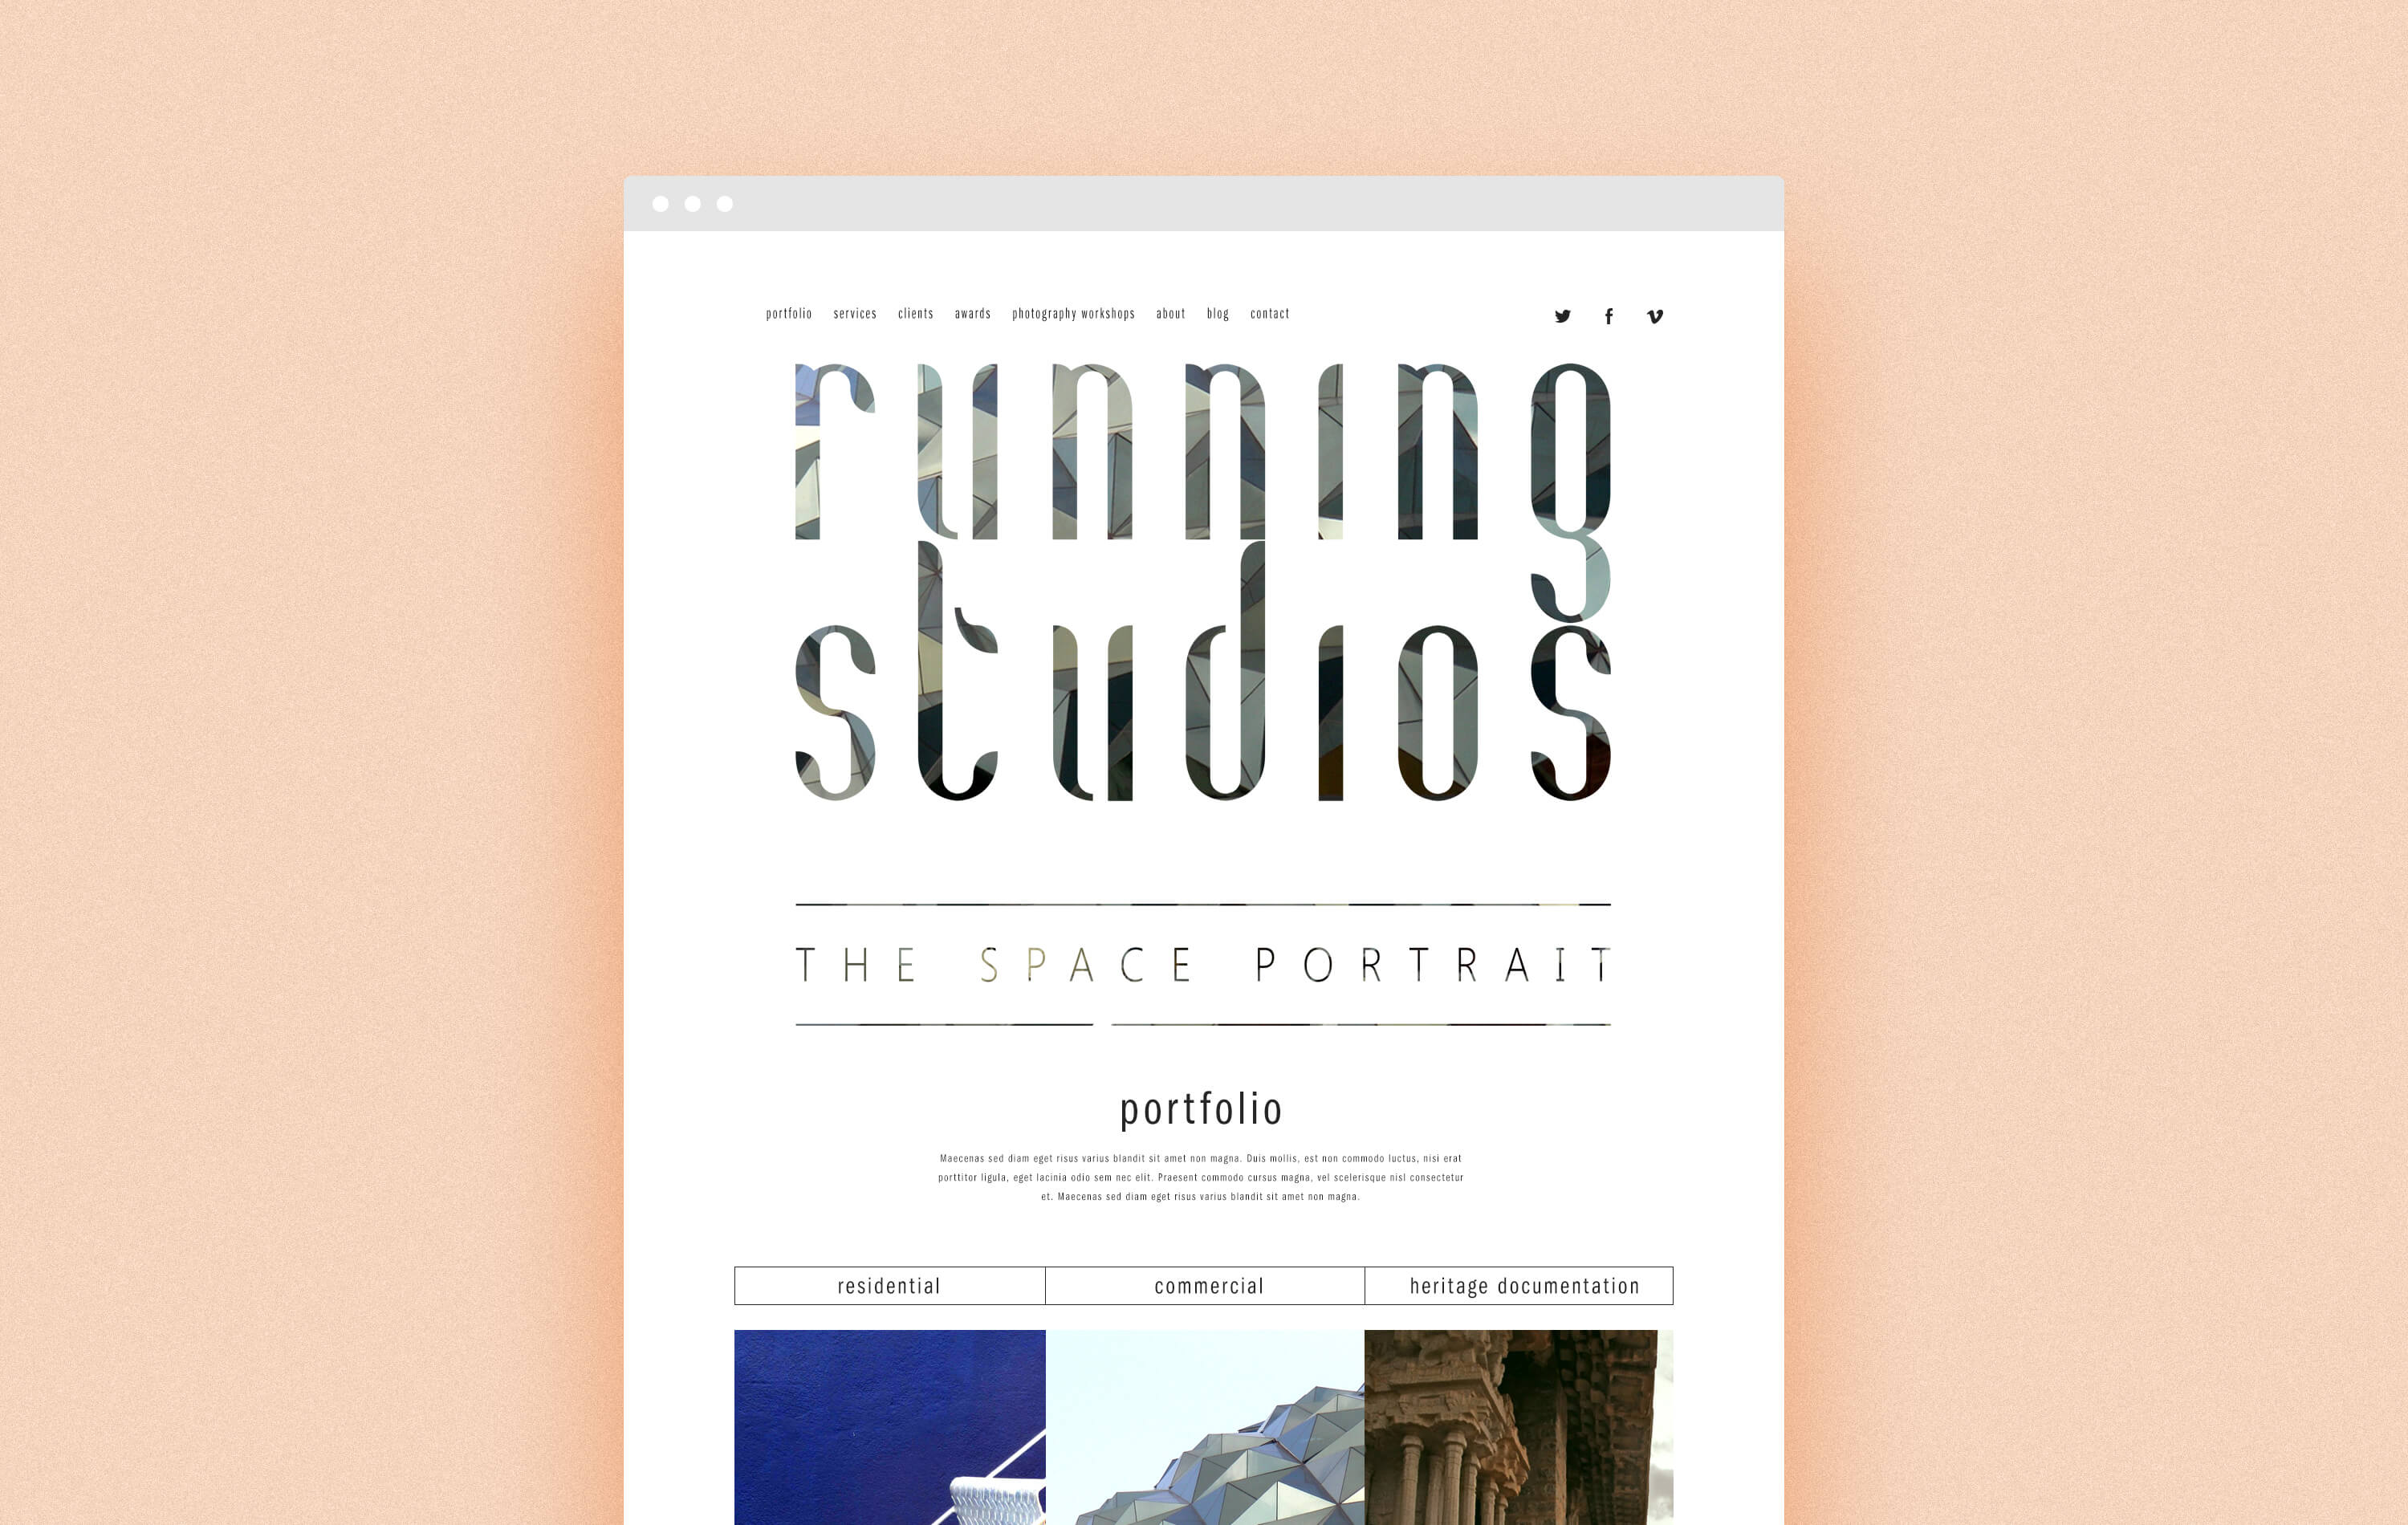 Running-Studios-Cover-01a